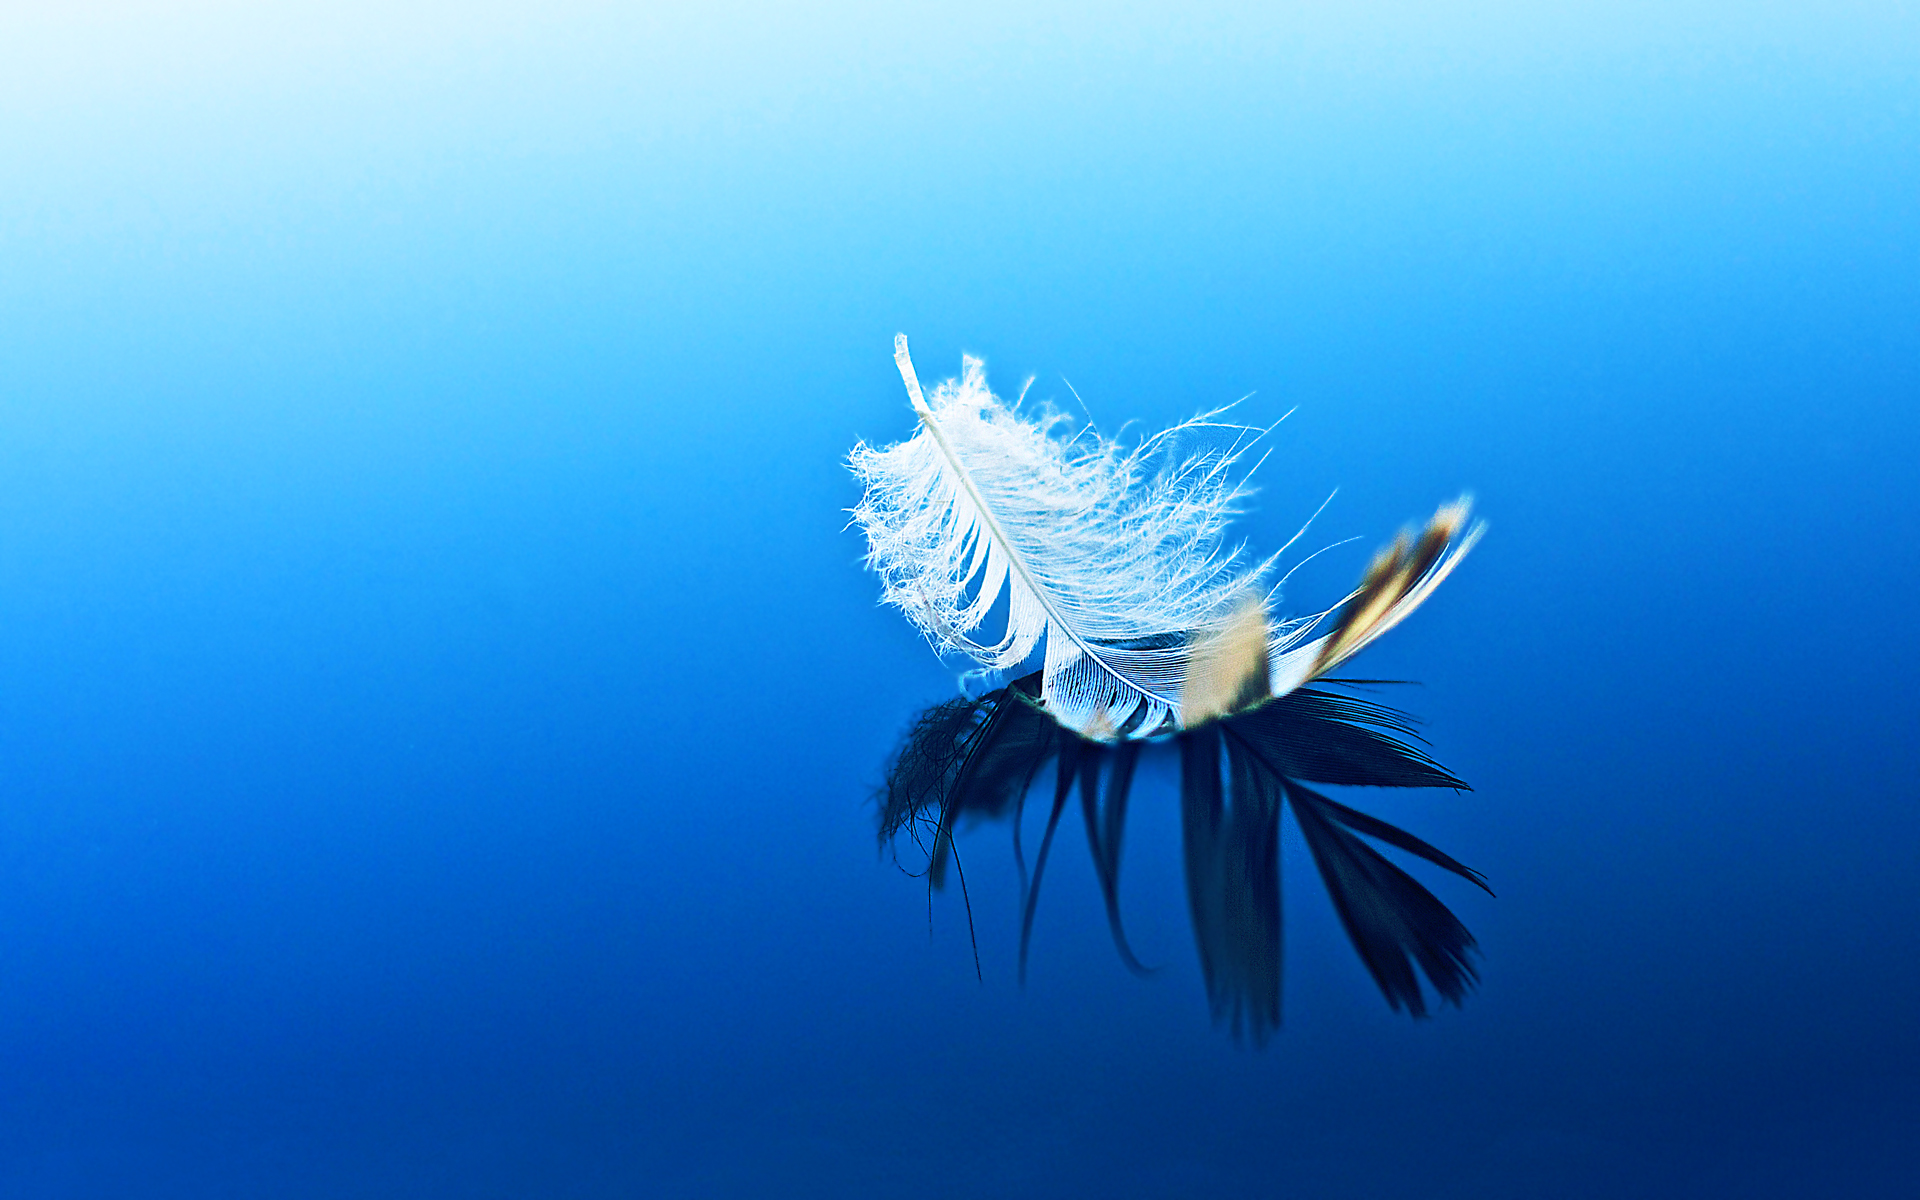 Feather Cool Background - HD Desktop Wallpapers